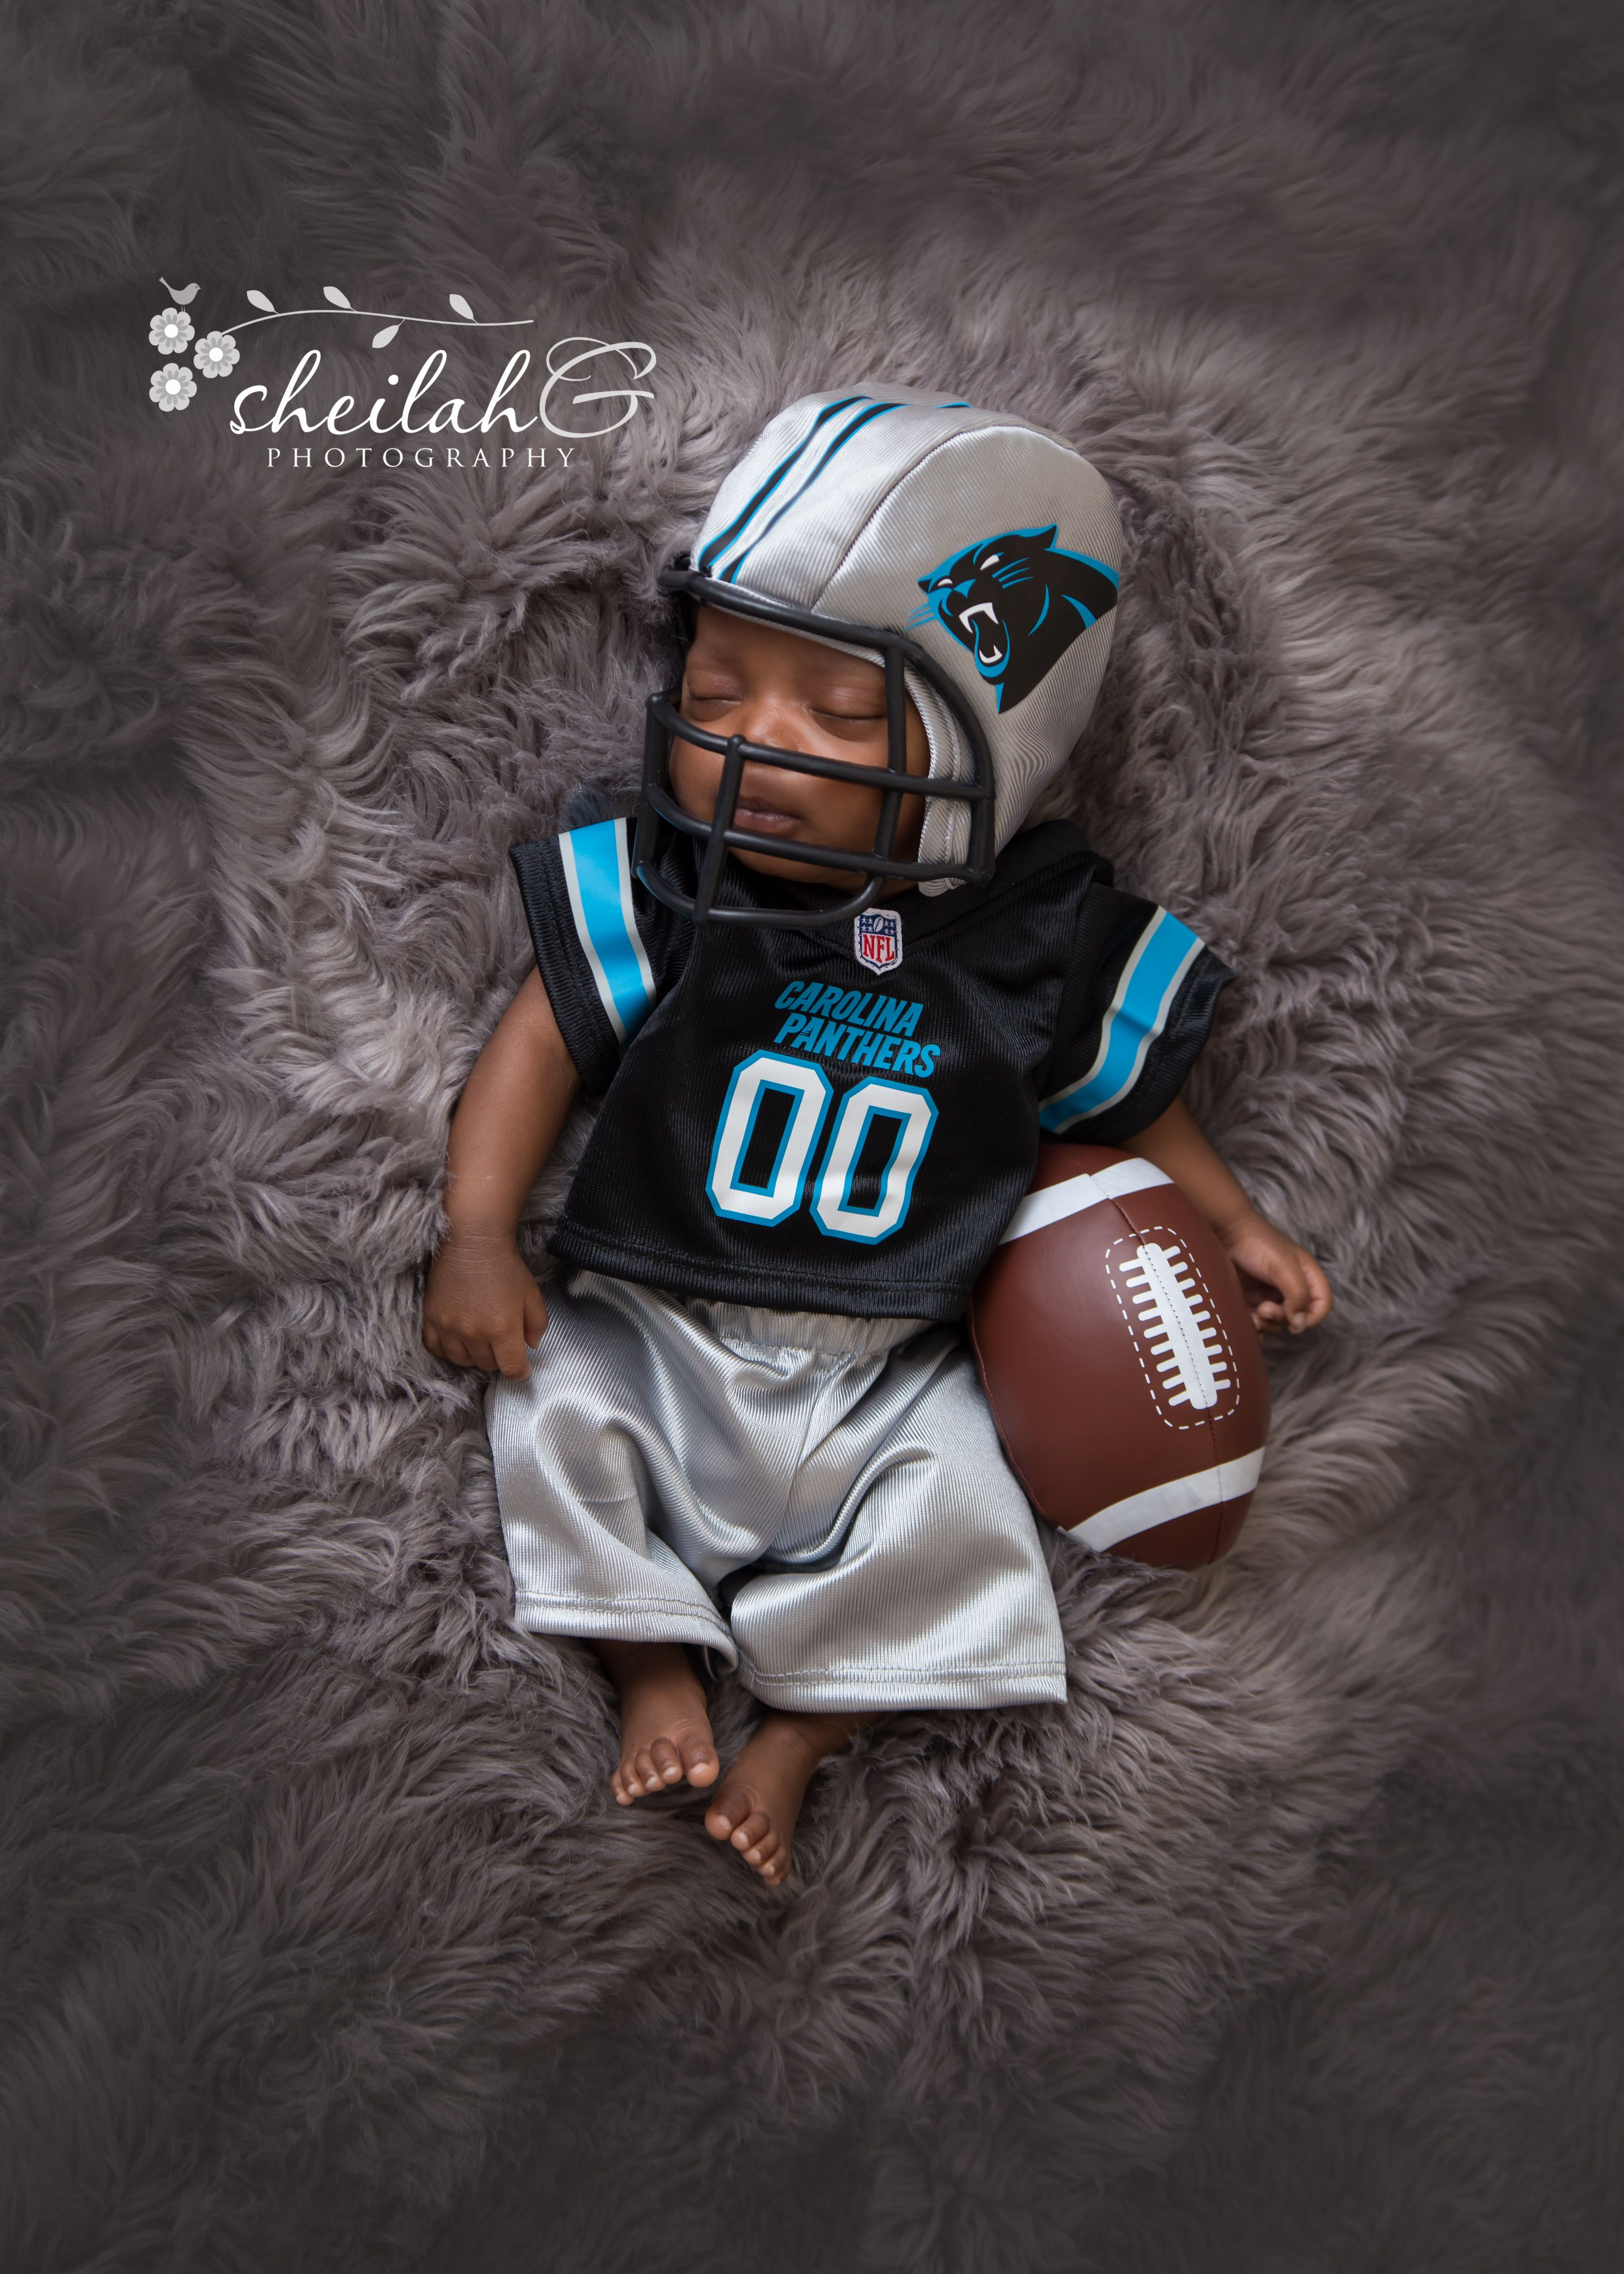 brand new d736c 01f0a Newborn Photography, NFL Super Bowl 50, Carolina Panthers ...